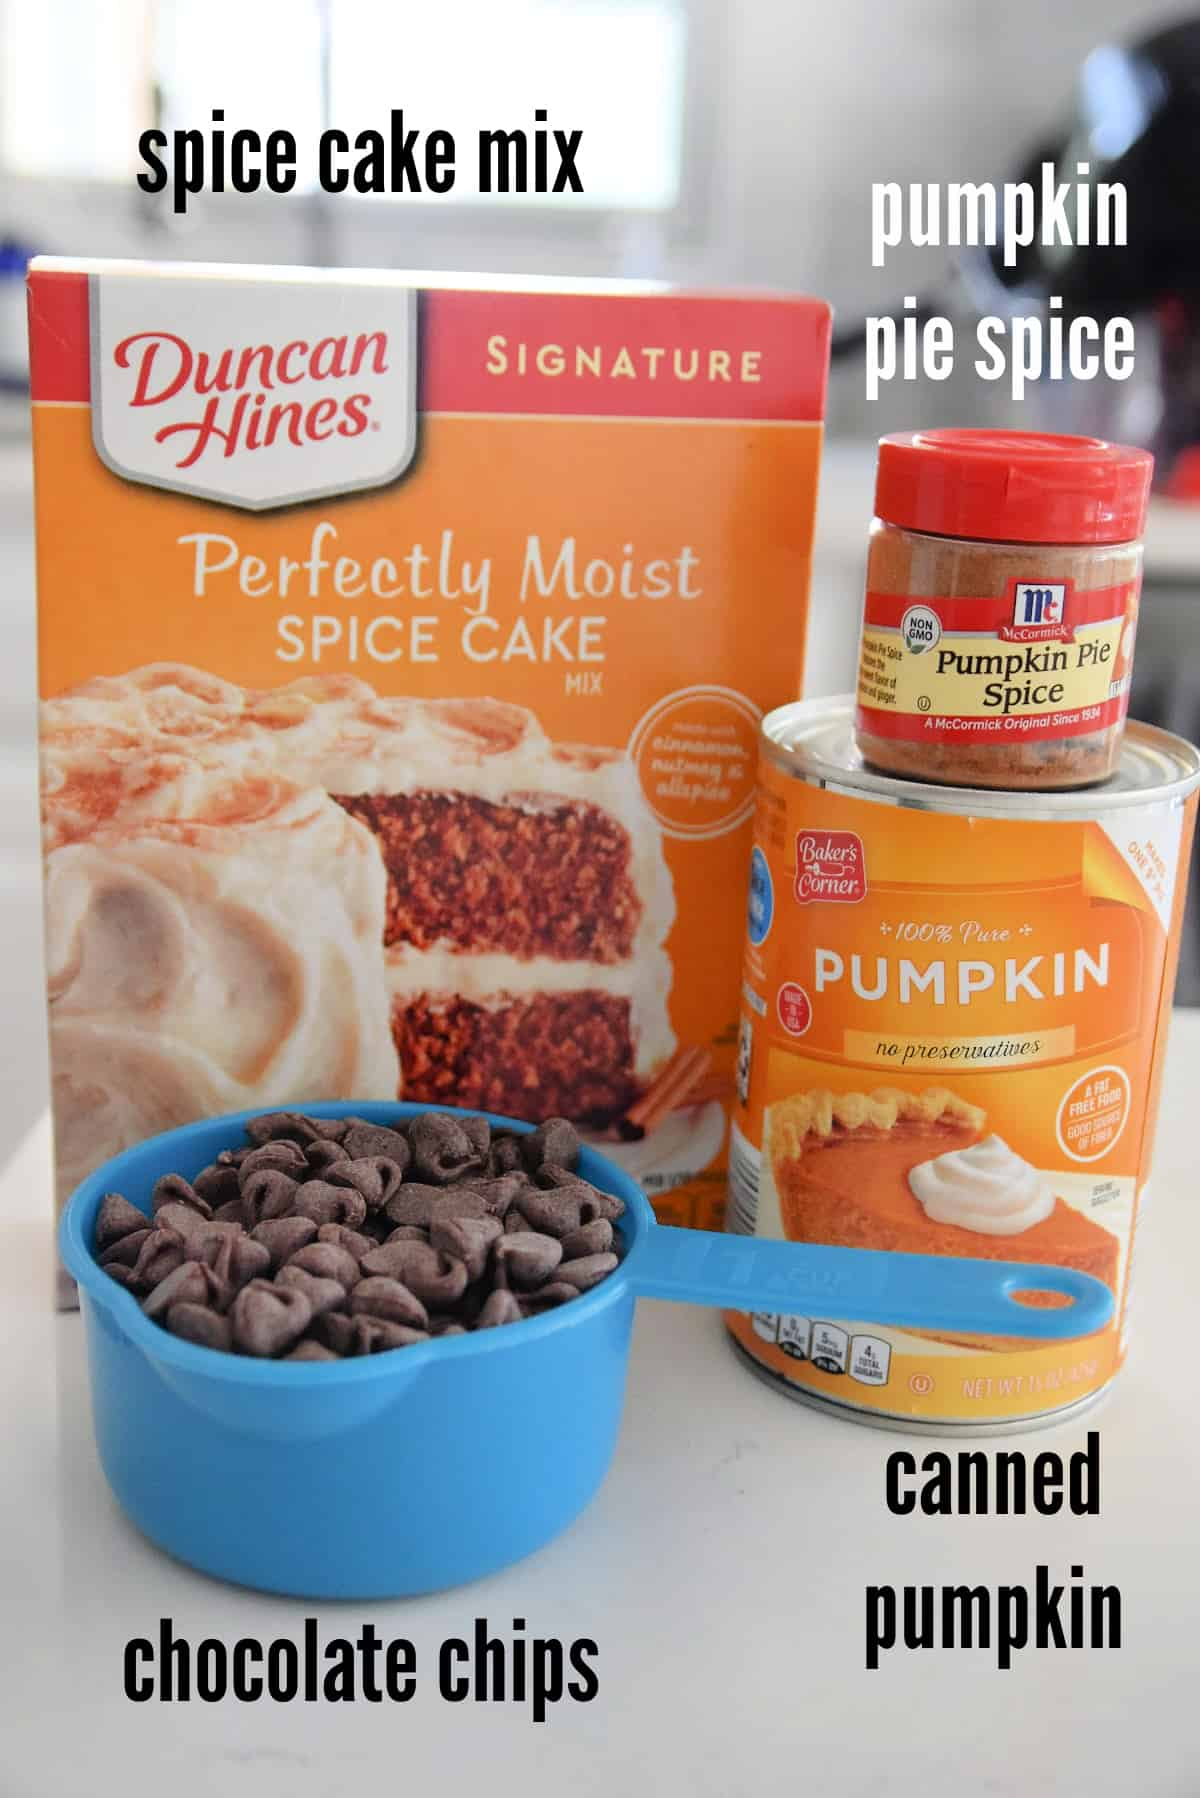 spice cake mix, pumpkin pie spice, canned pumpkin and chocolate chips